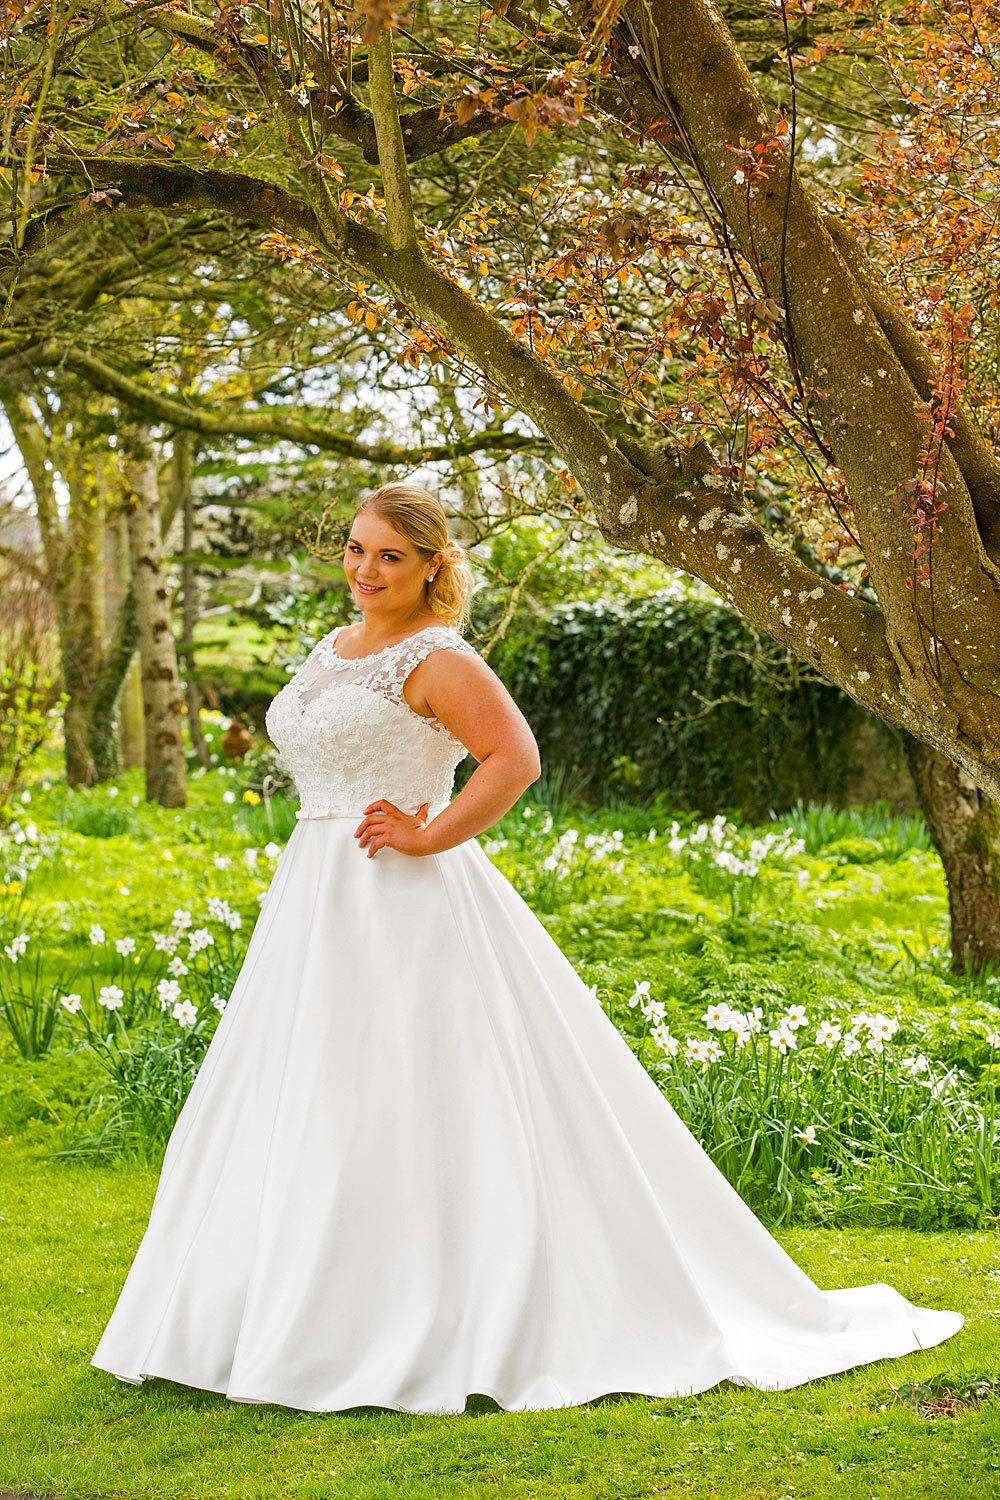 Wedding Dresses 2017 Northern Ireland : Wedding dresses for the fuller figure in derry northern ireland